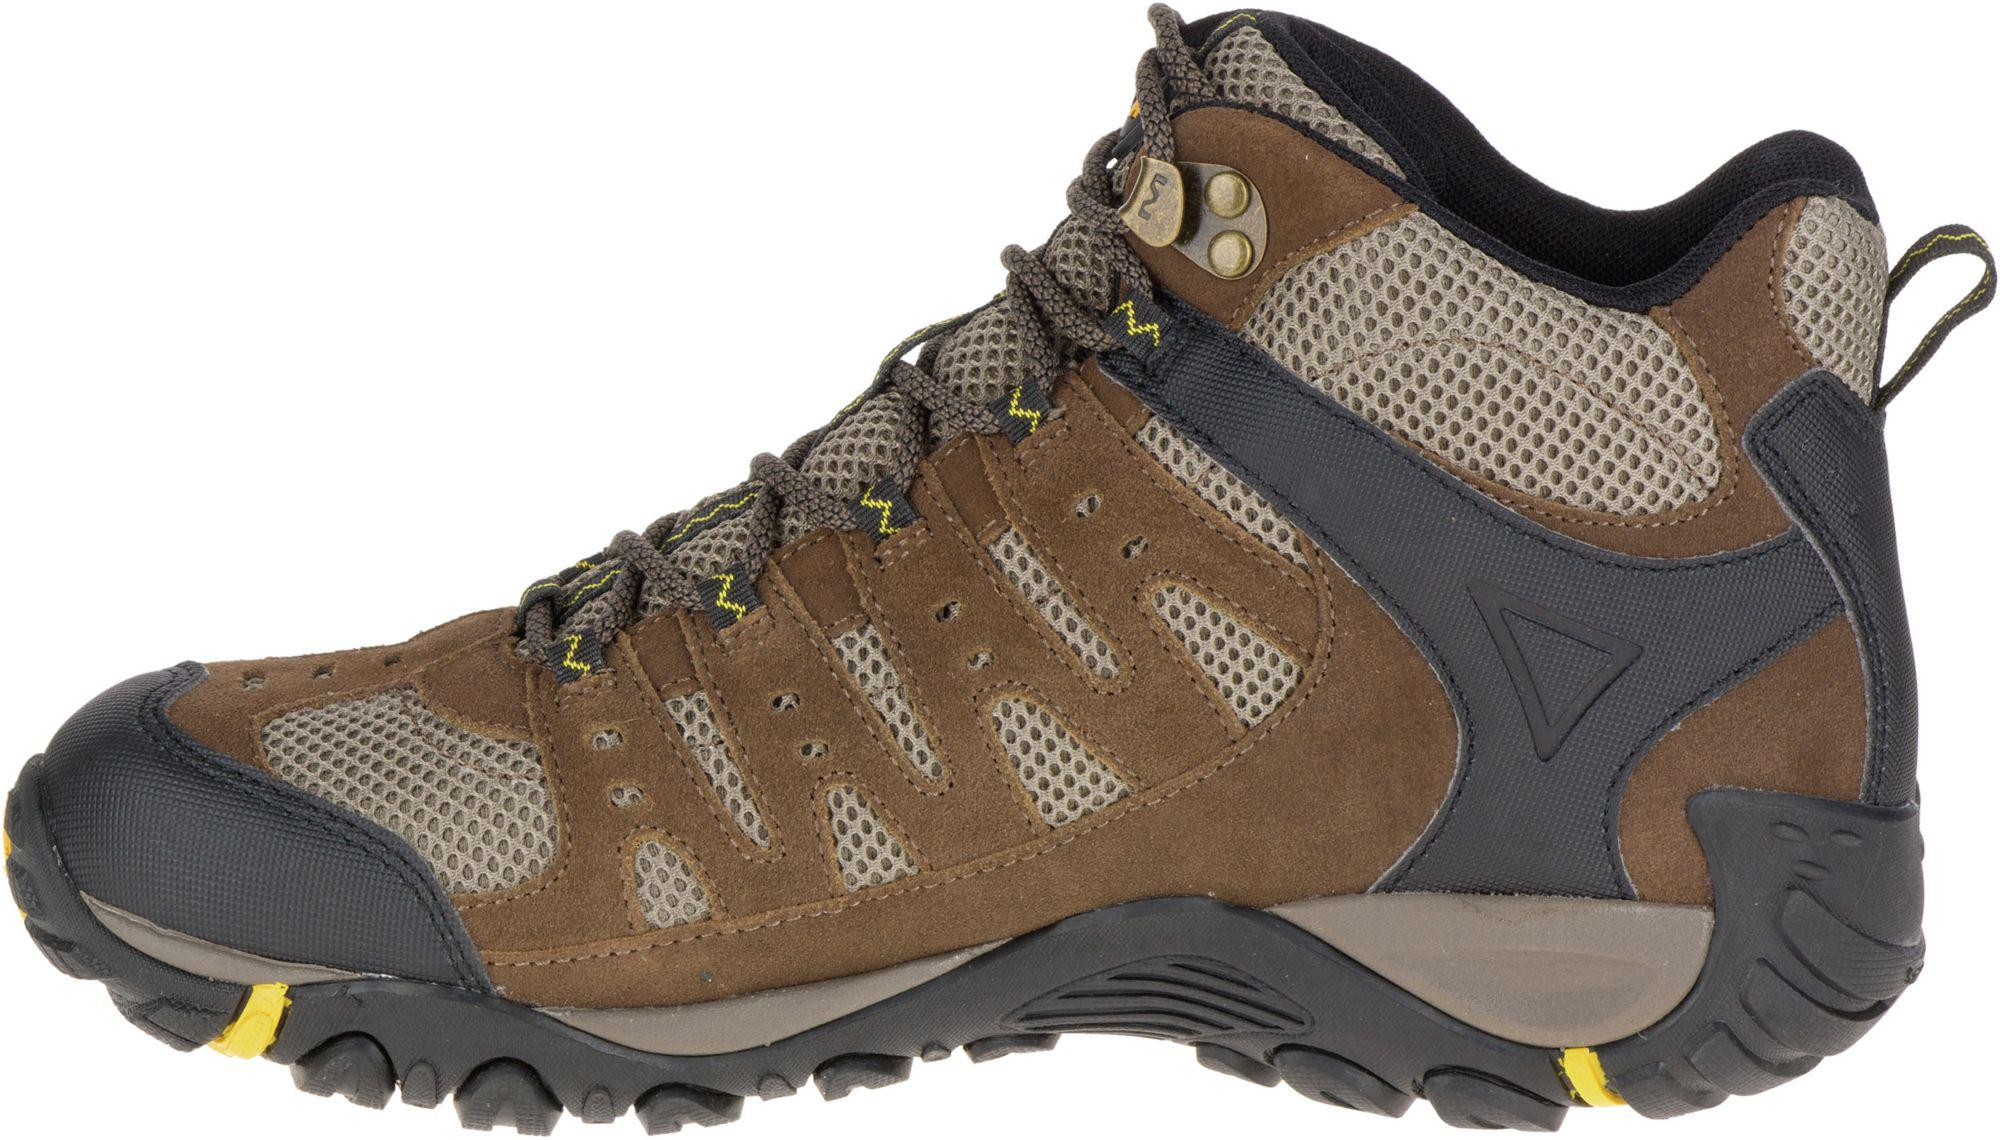 8c0cf2fb099 Merrell Multicolor Accentor Mid Waterproof Hiking Boots for men